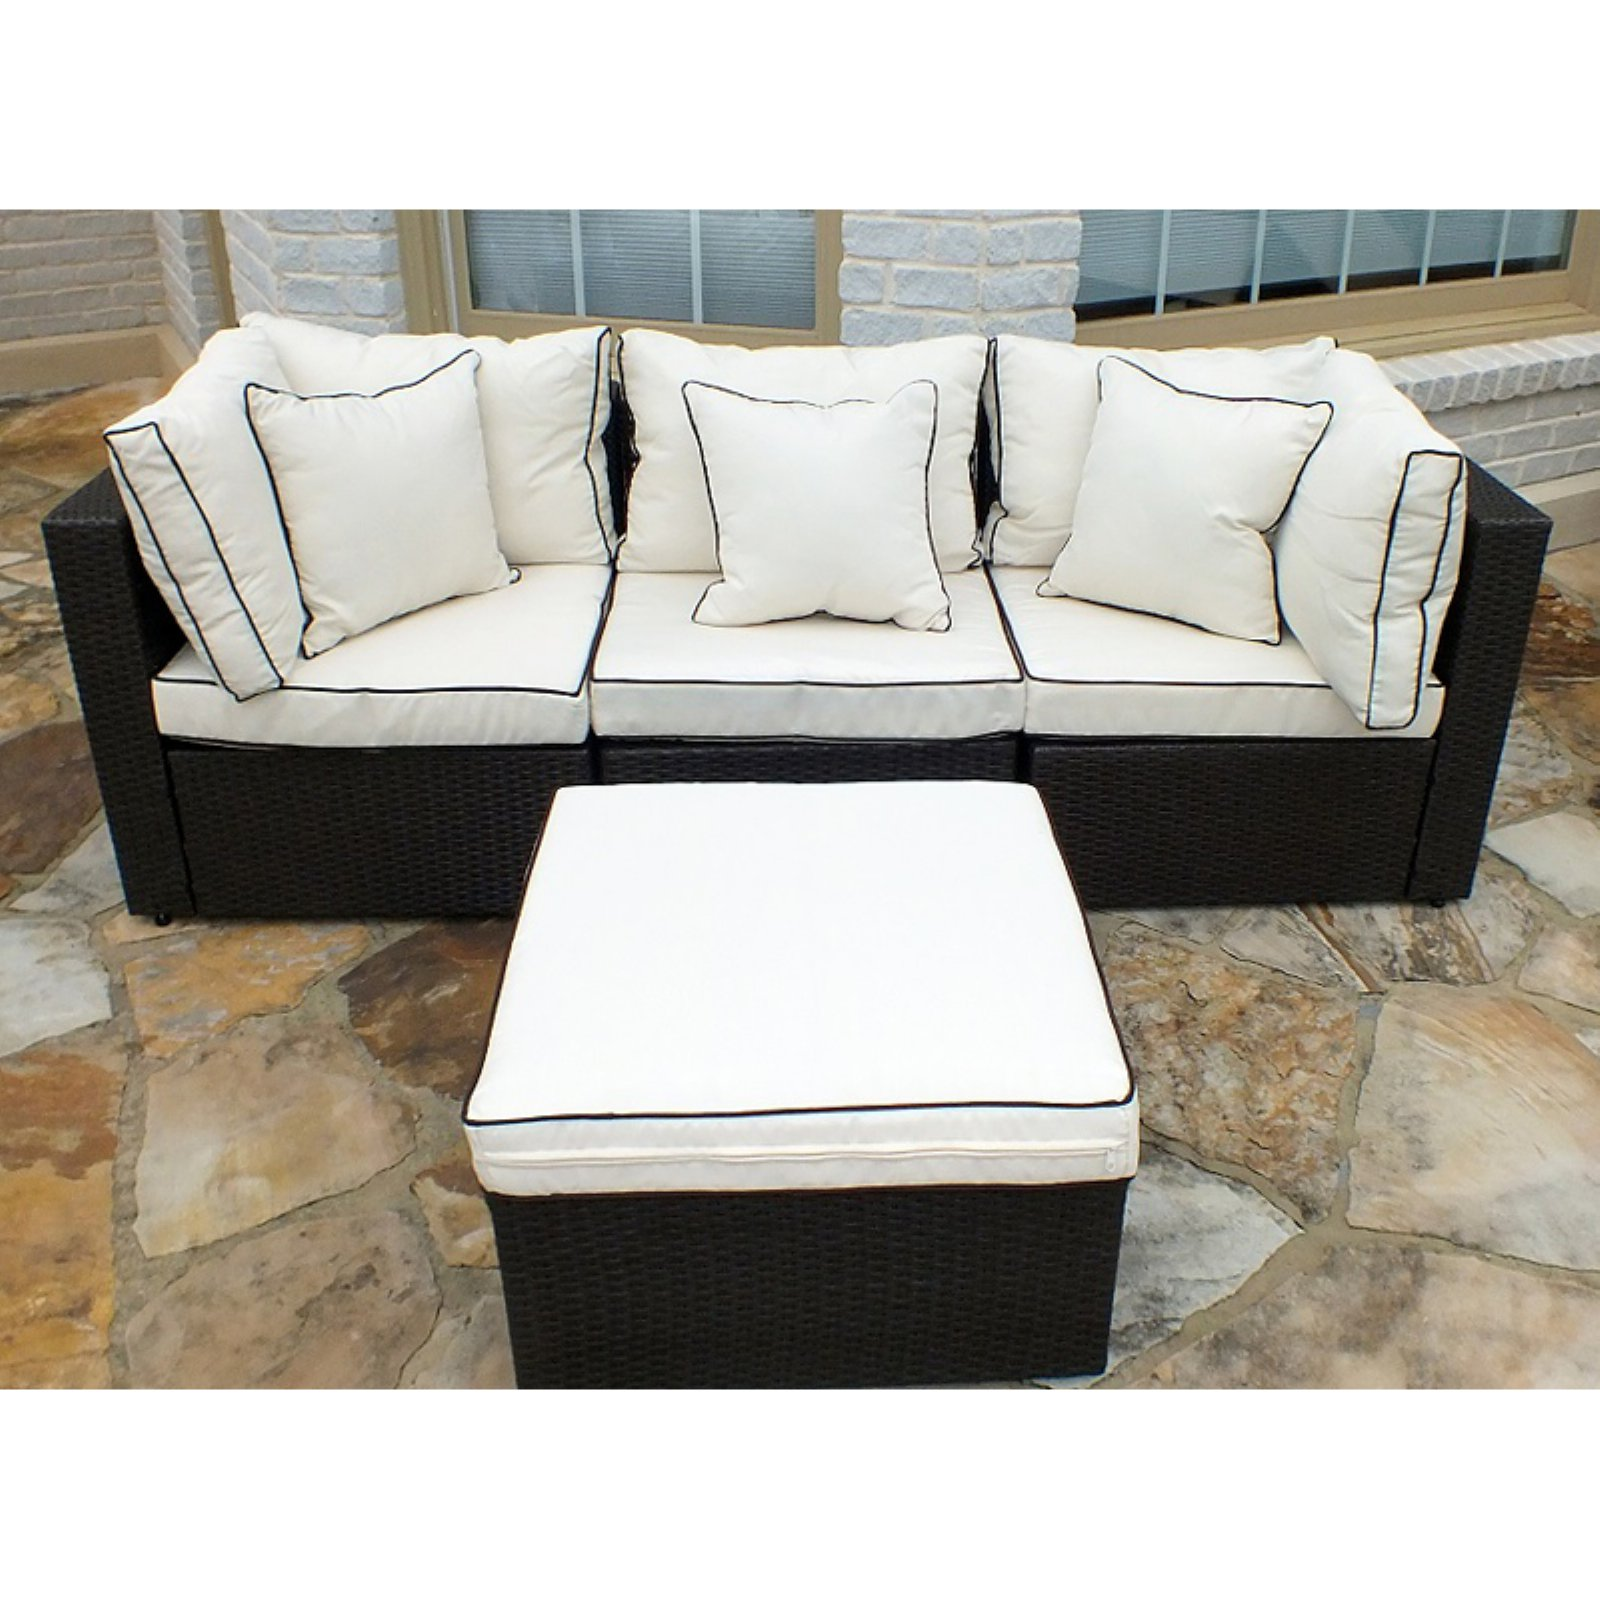 JJ International Hampton Wicker Patio Sofa With Ottoman